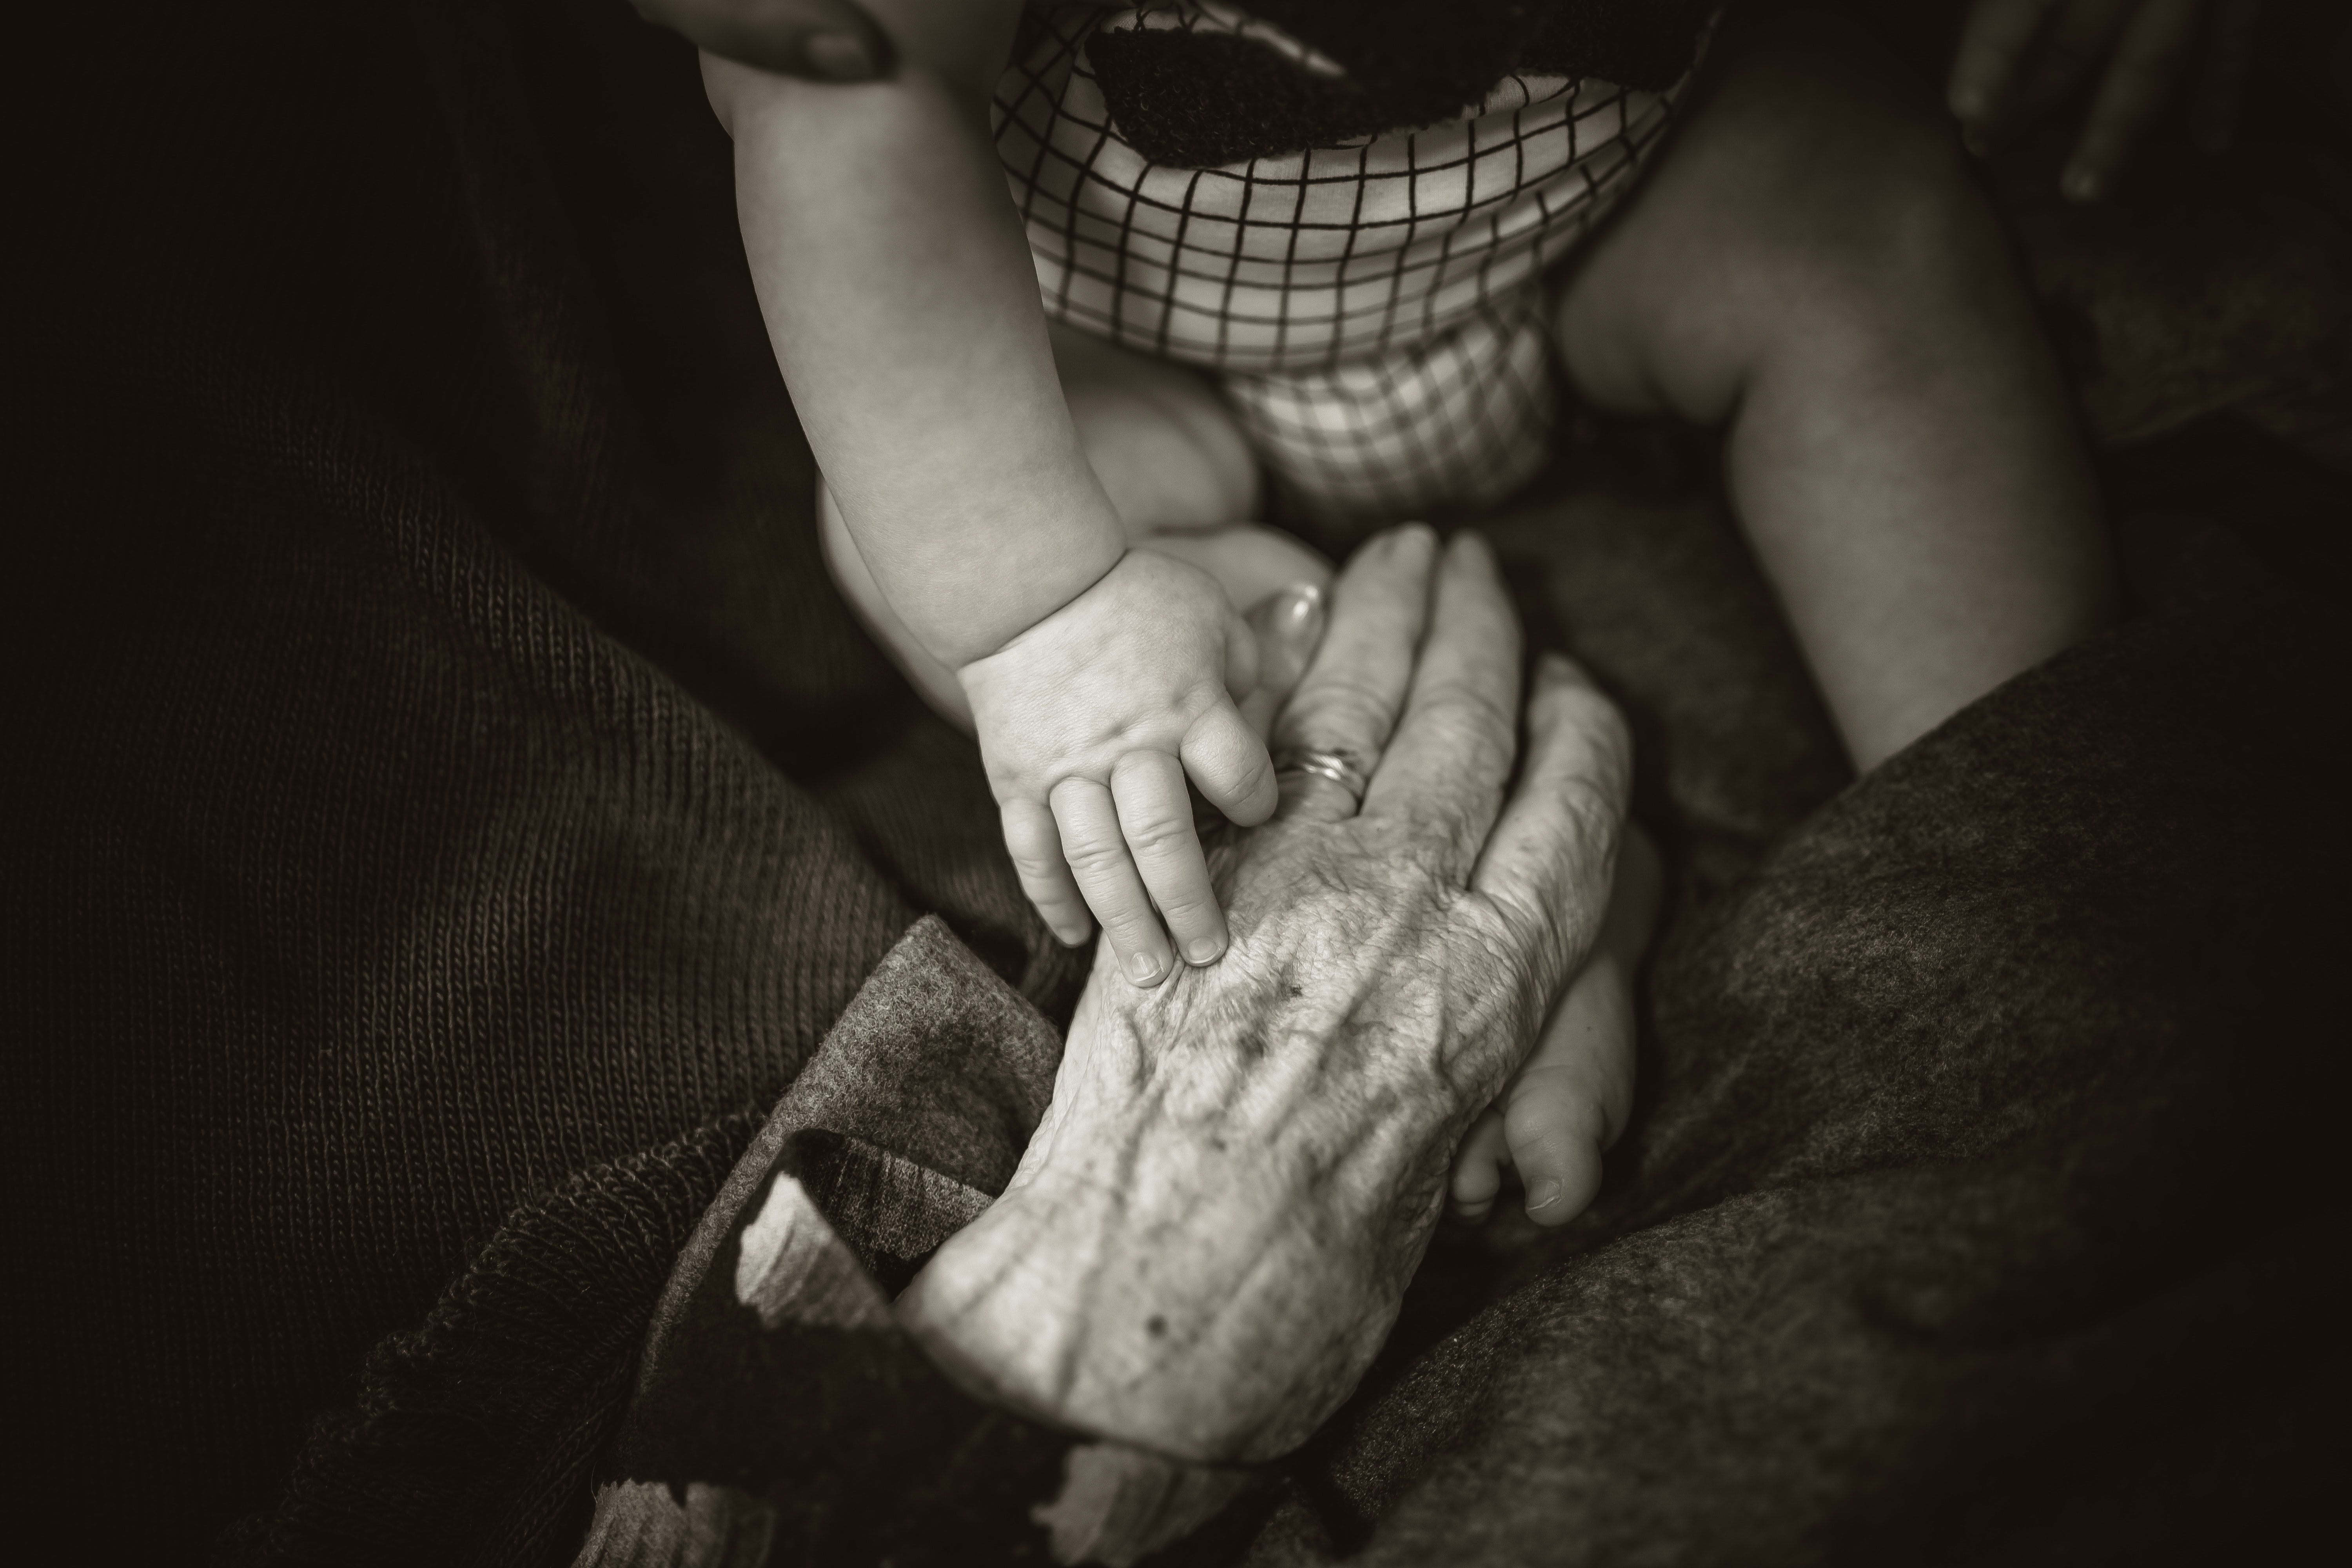 A black-and-white photo of an infant, whose hand is holding the gnarled hand of his great-grandmother.